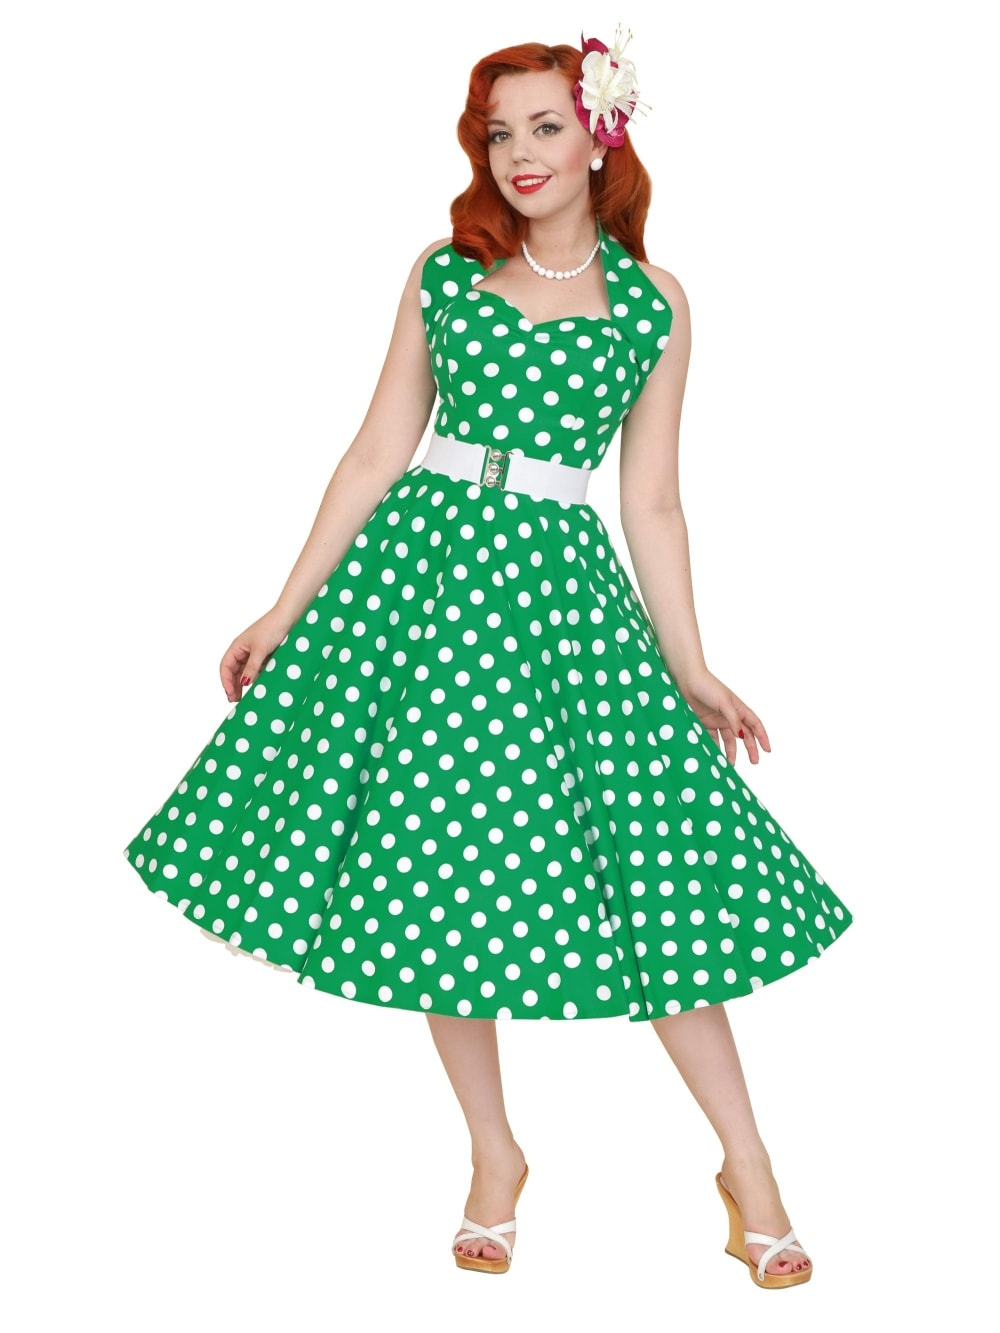 7c67b34f31d9 1950s Halterneck Green Polkadot Dress from Vivien of Holloway